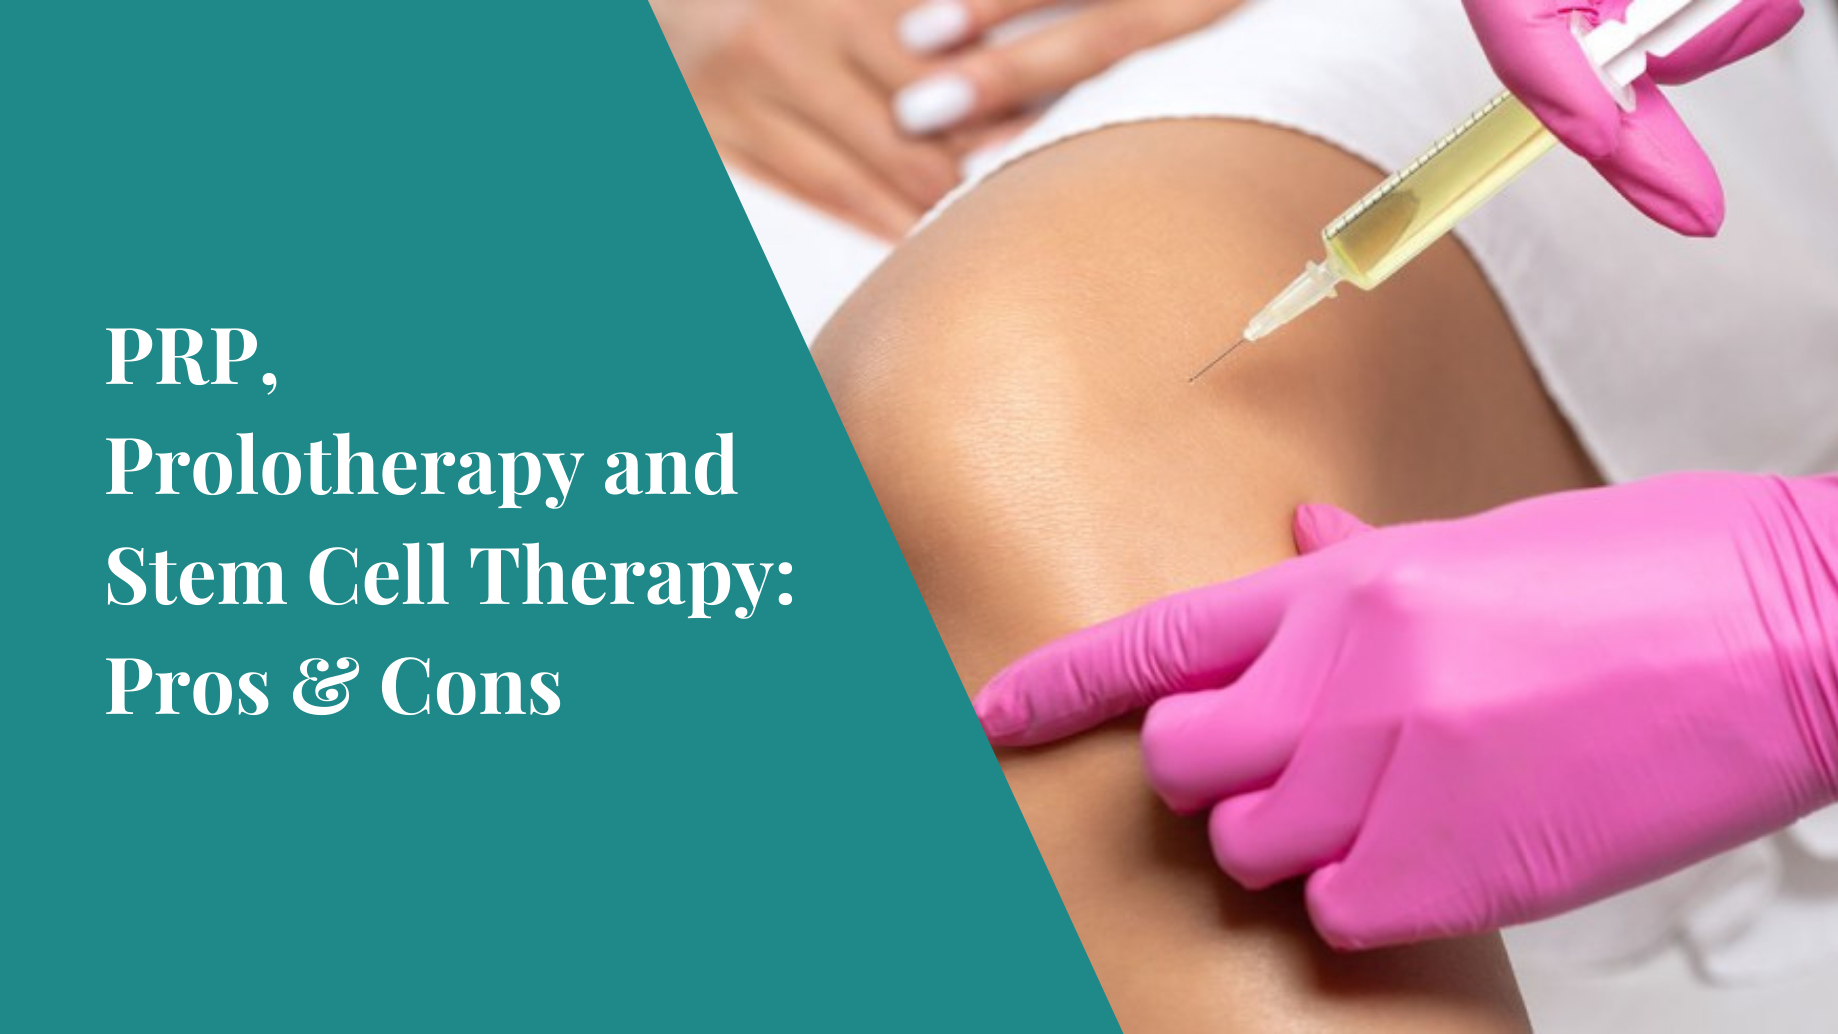 PRP, Prolotherapy And Stem Cell Therapy Pros & Cons